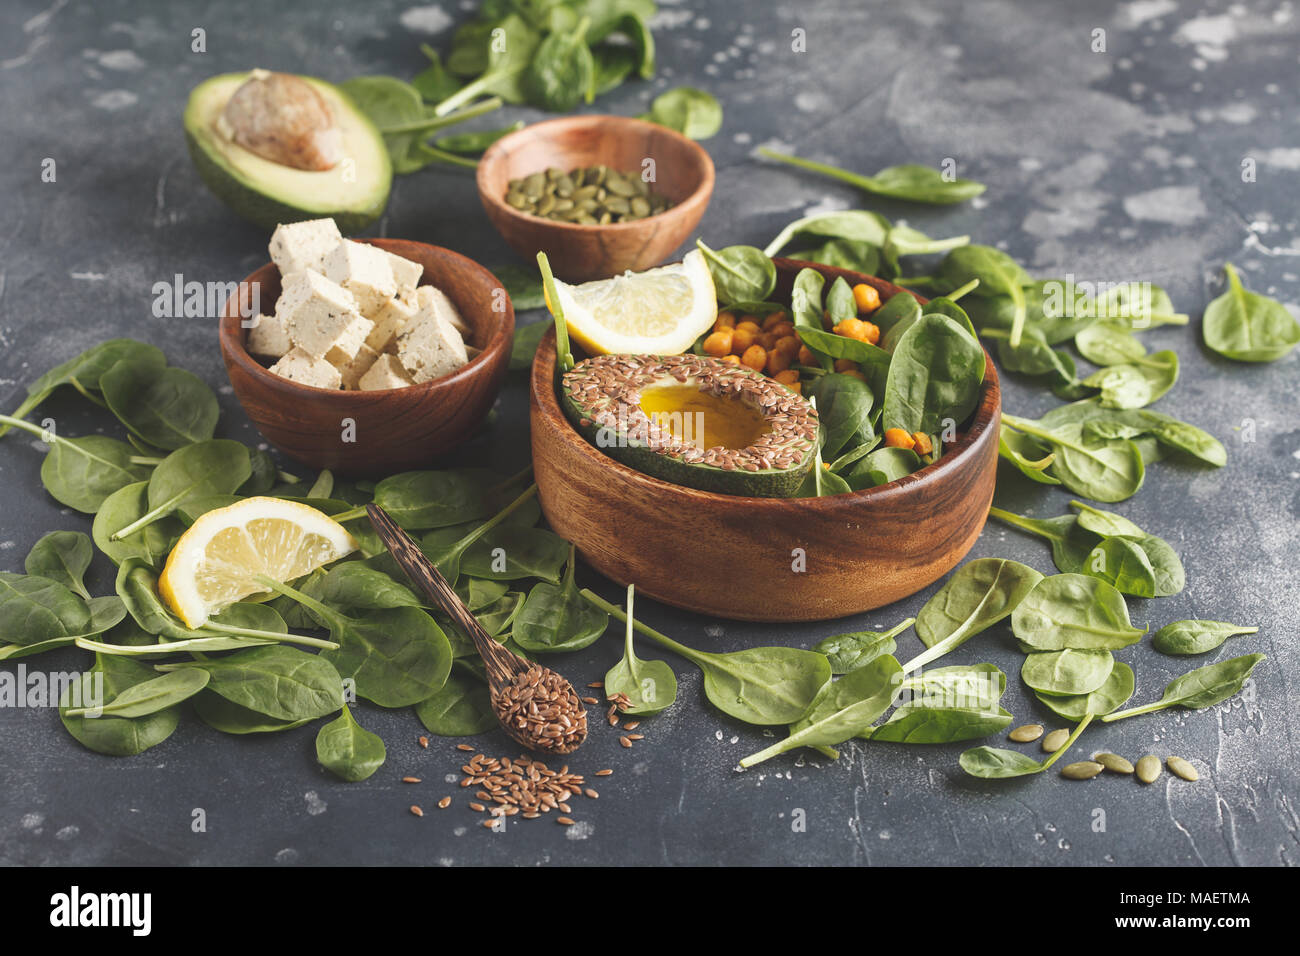 Healthy vegetarian salad with tofu, chickpeas, avocado and sunflower seeds. Healthy vegan food concept. Dark background, copy space. - Stock Image